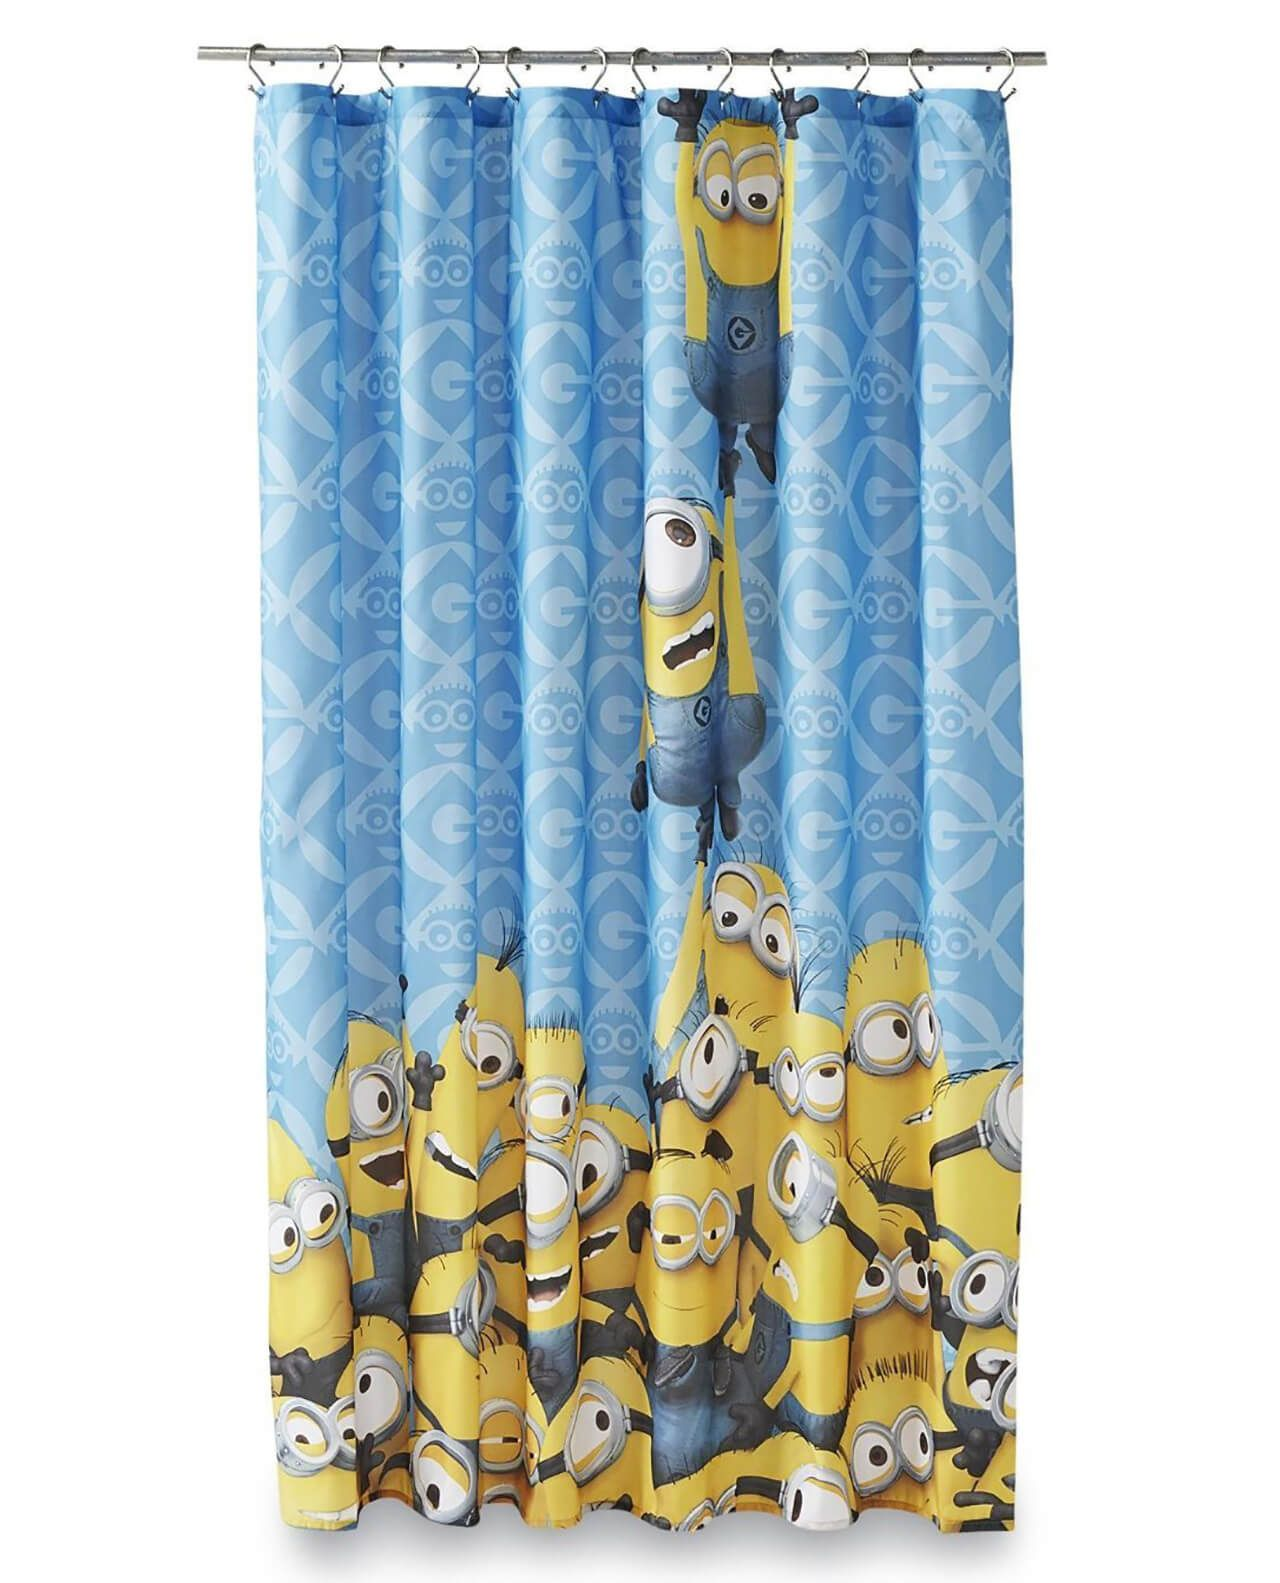 22 Shower Curtains Your Kid Will Love Fabric Shower Curtains Kid Bathroom Decor Kids Shower Curtain